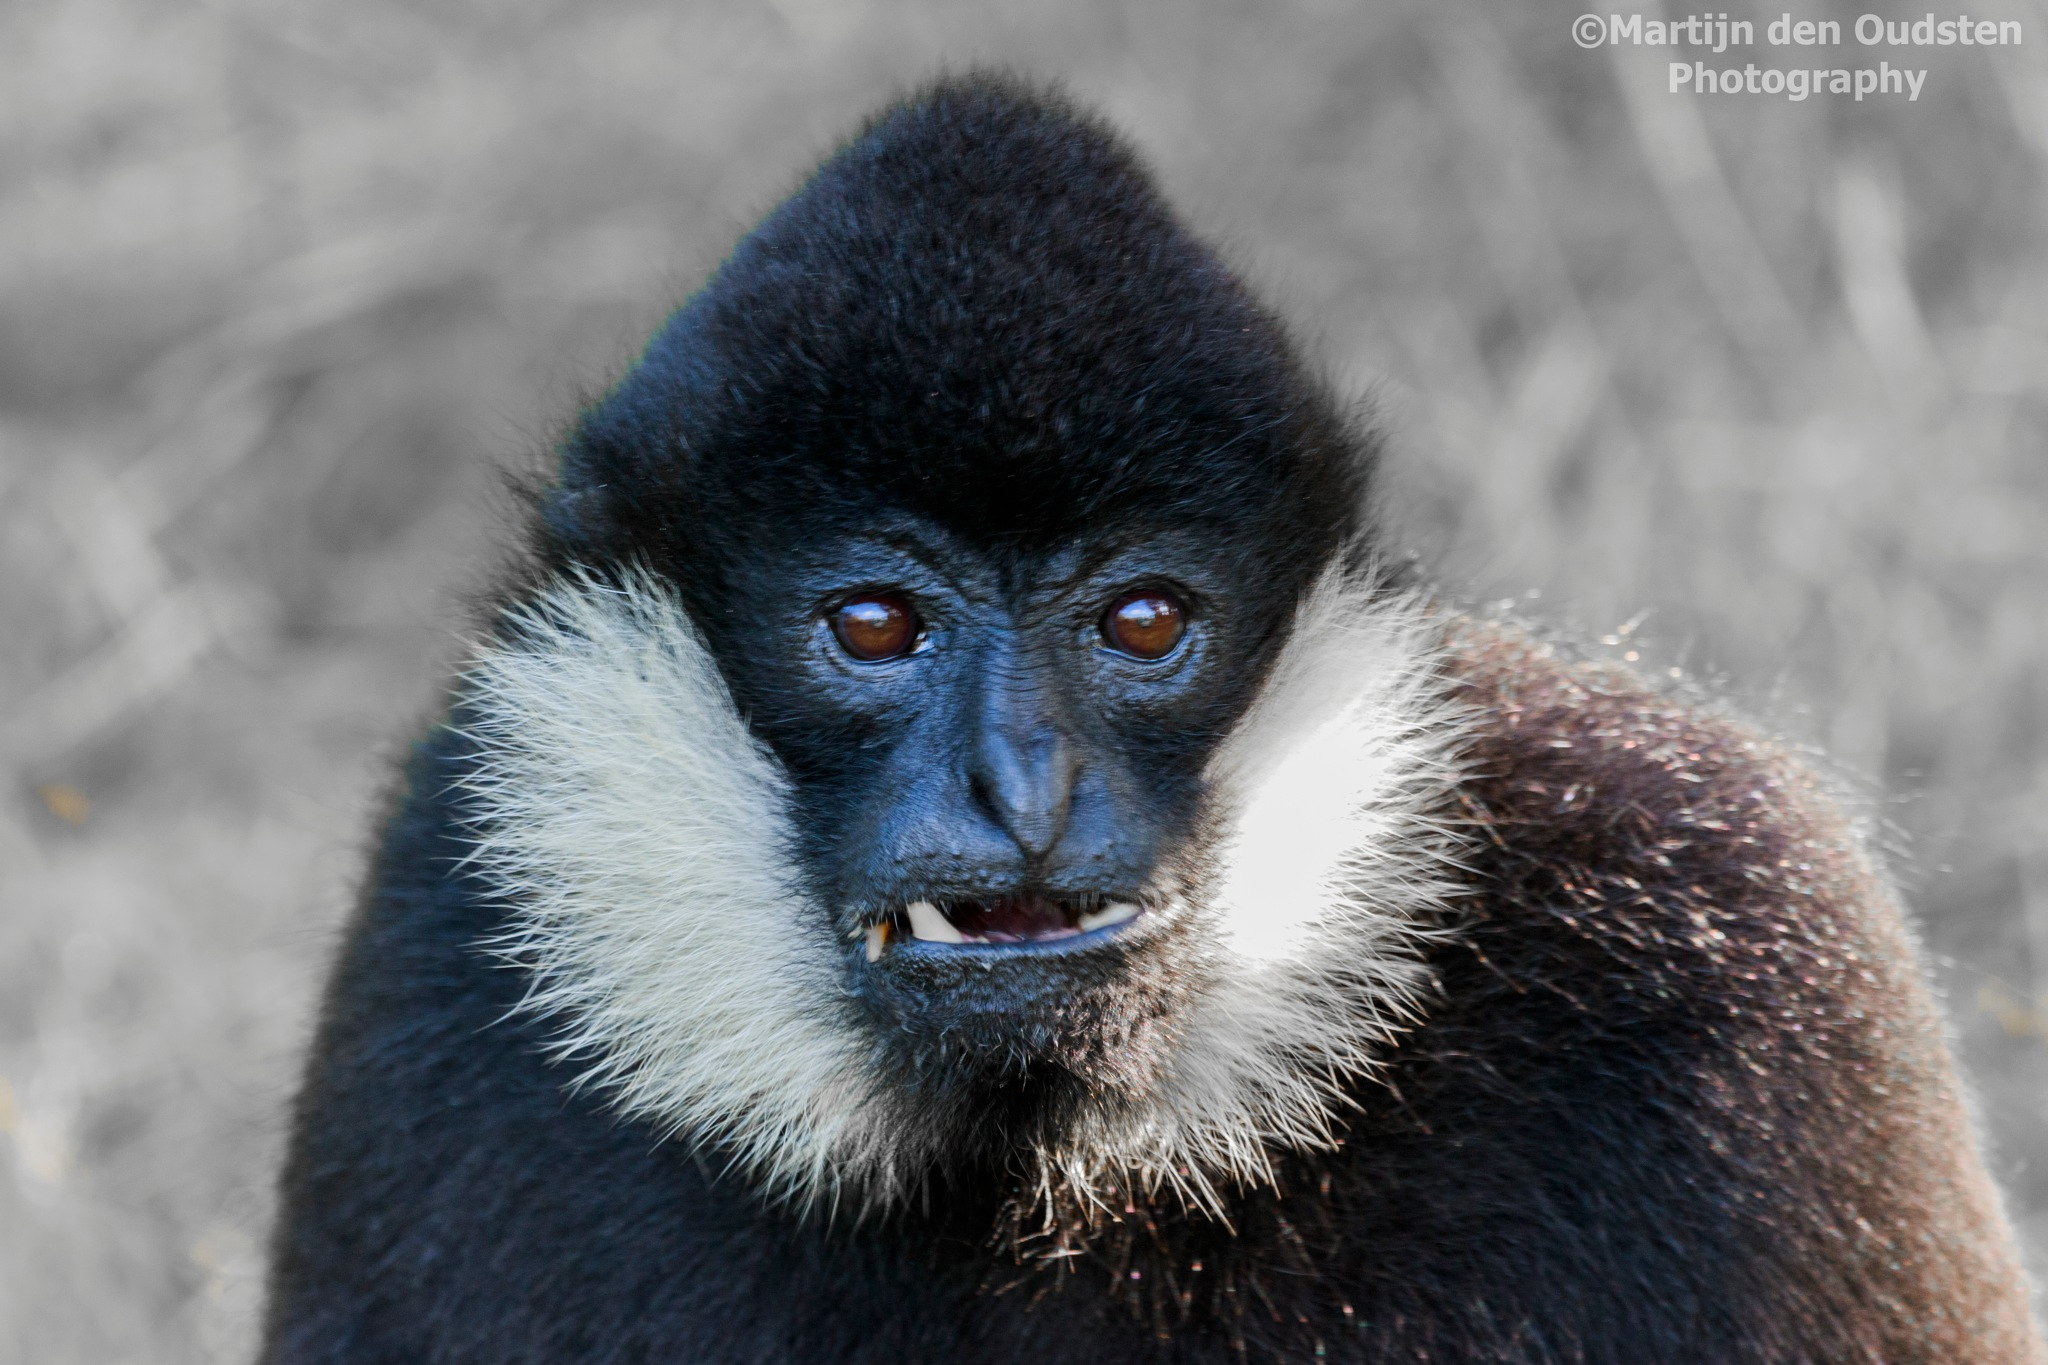 Monkey (don't know the specific name) by Martijn Den Oudsten